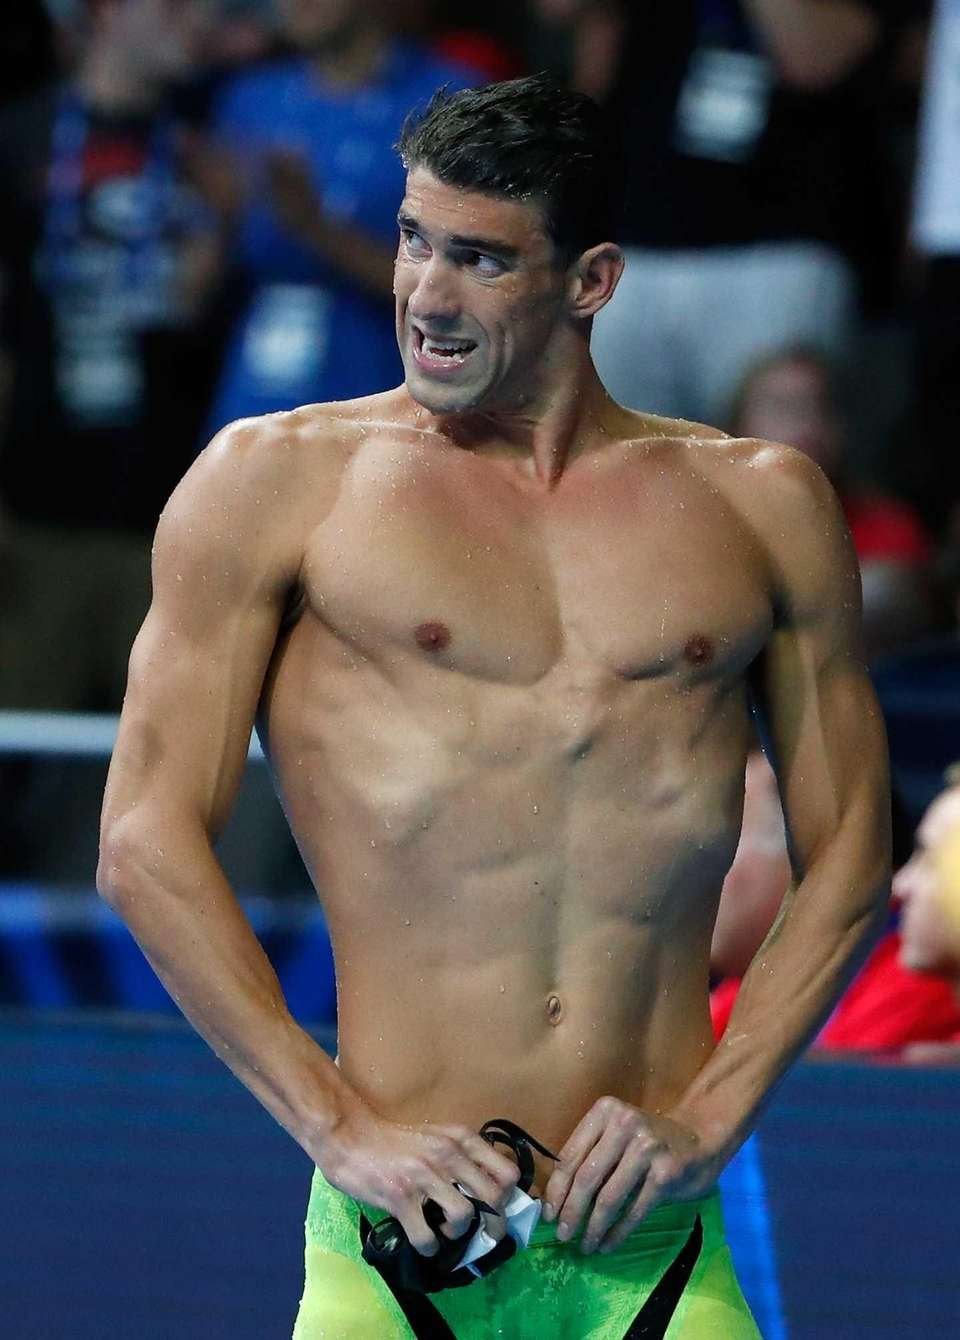 Michael Phelps of the United States celebrates after